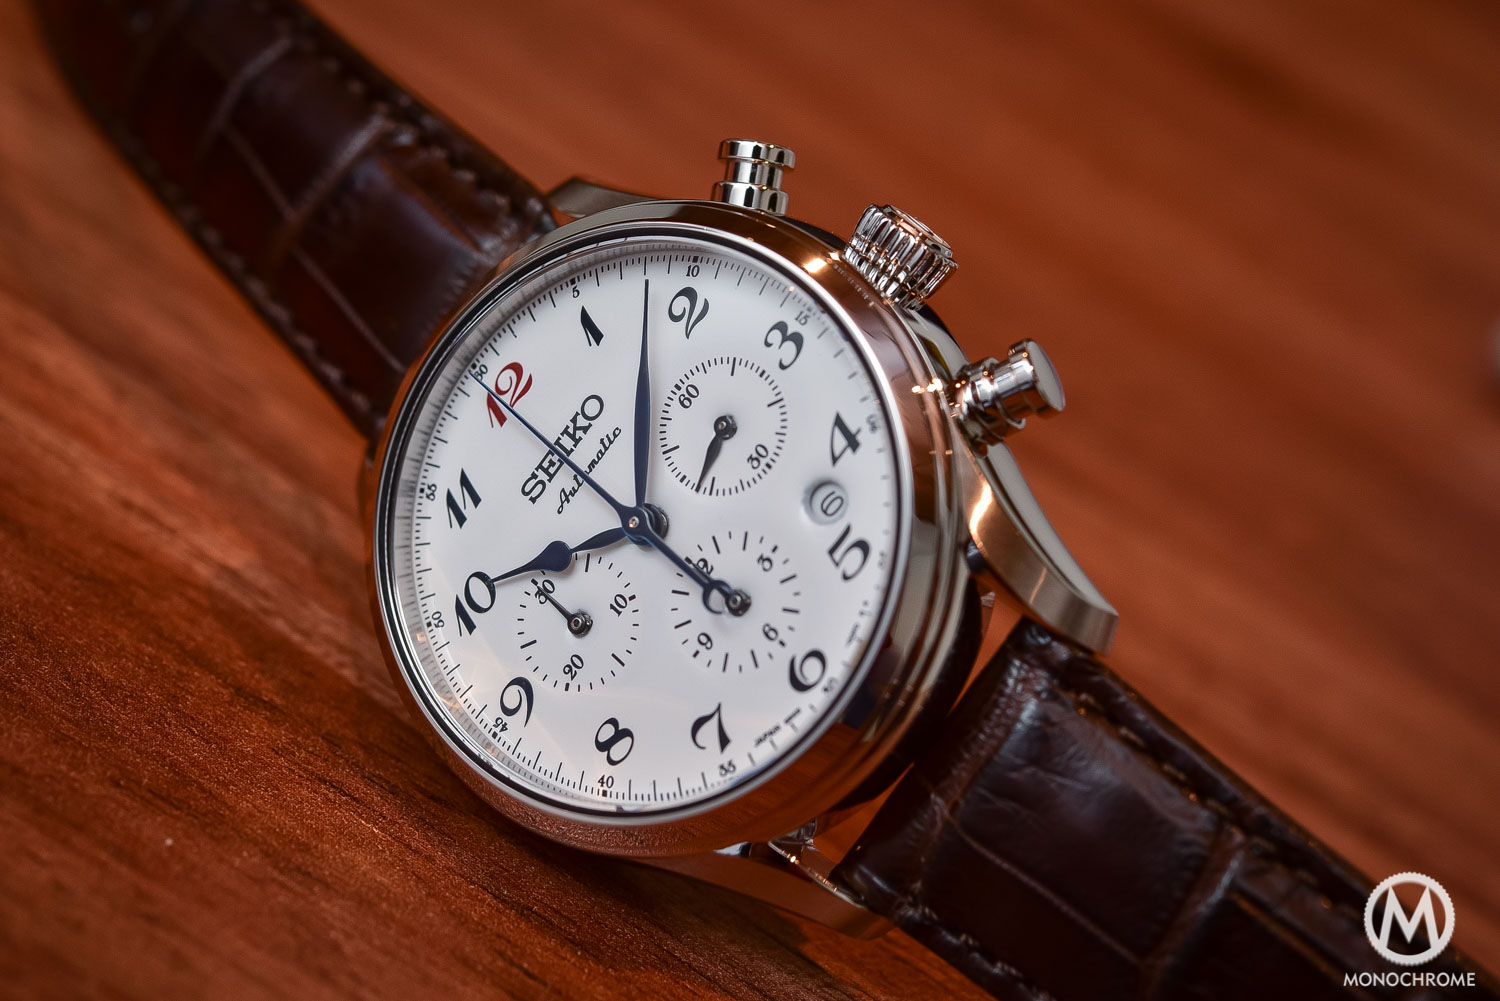 Hands On Seiko Presage 60th Anniversary Chronograph, with